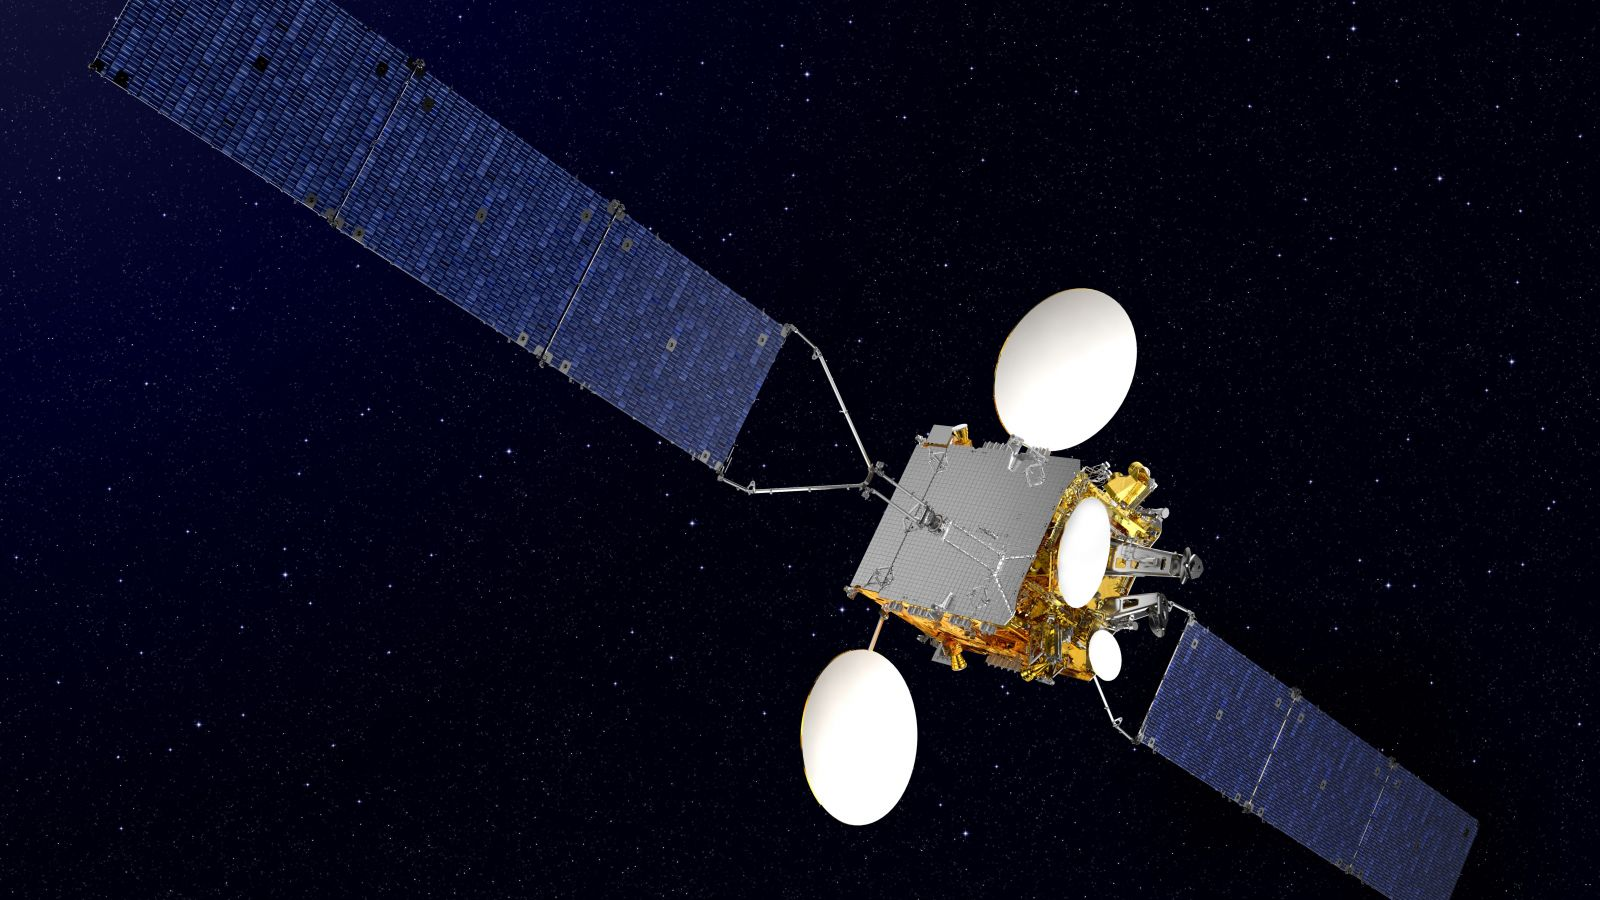 An artist's rendering of Koreasat 5A in orbit. Image Credit: Thales Alenia Space